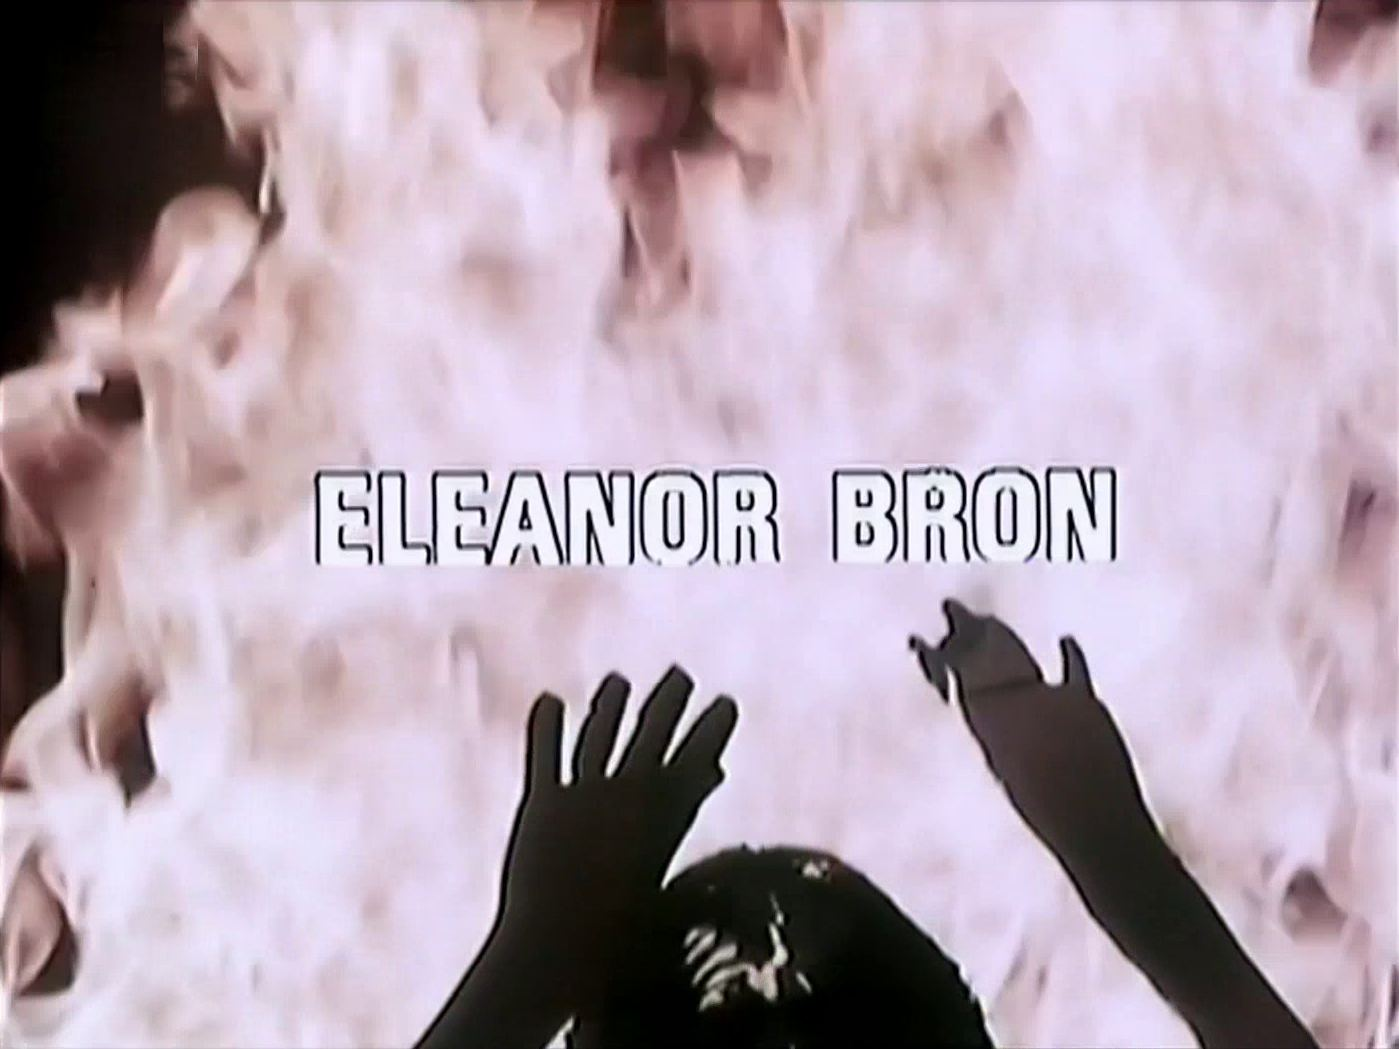 Opening credits from the 1983 'The Tribute' episode of Tales of the Unexpected (1979-1988) (3). Eleanor Bron